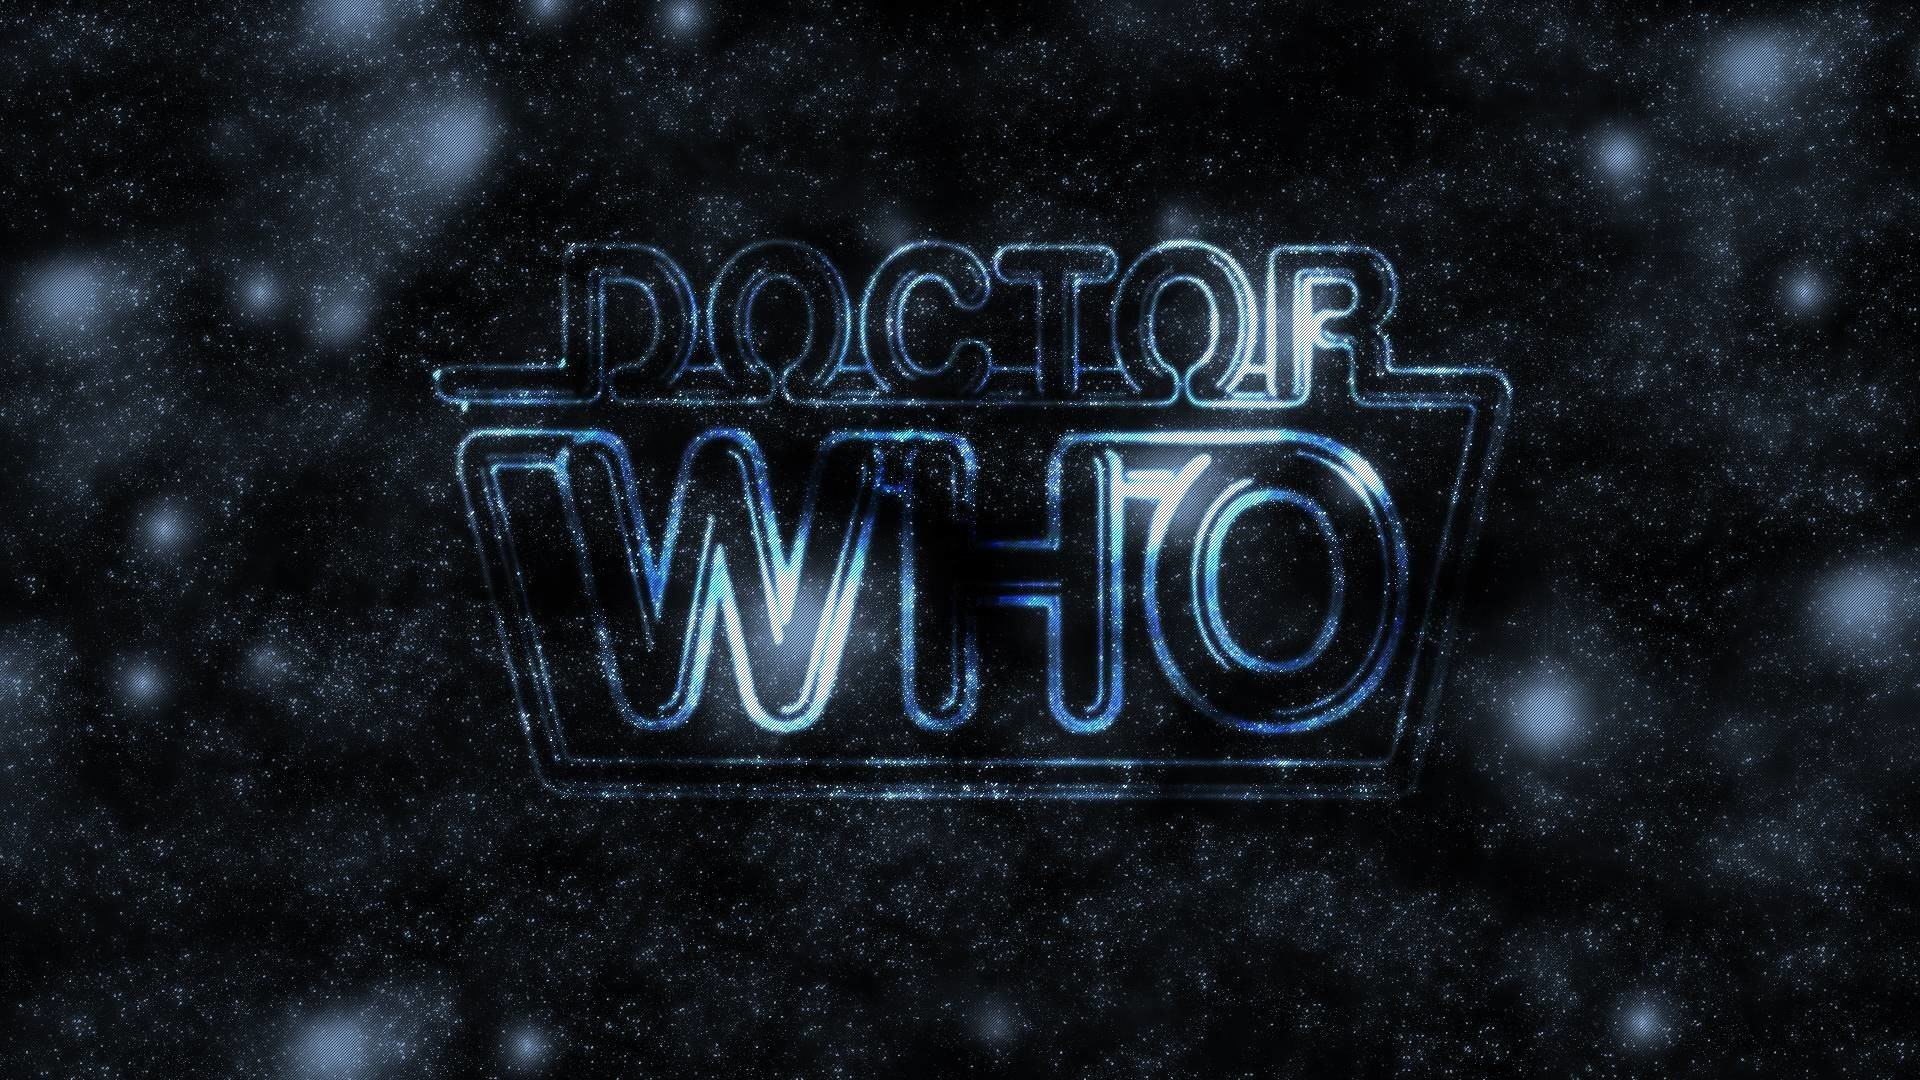 1920x1080  The Doctor in the Stars HD Wallpaper | Download HD Wallpaper,  High .